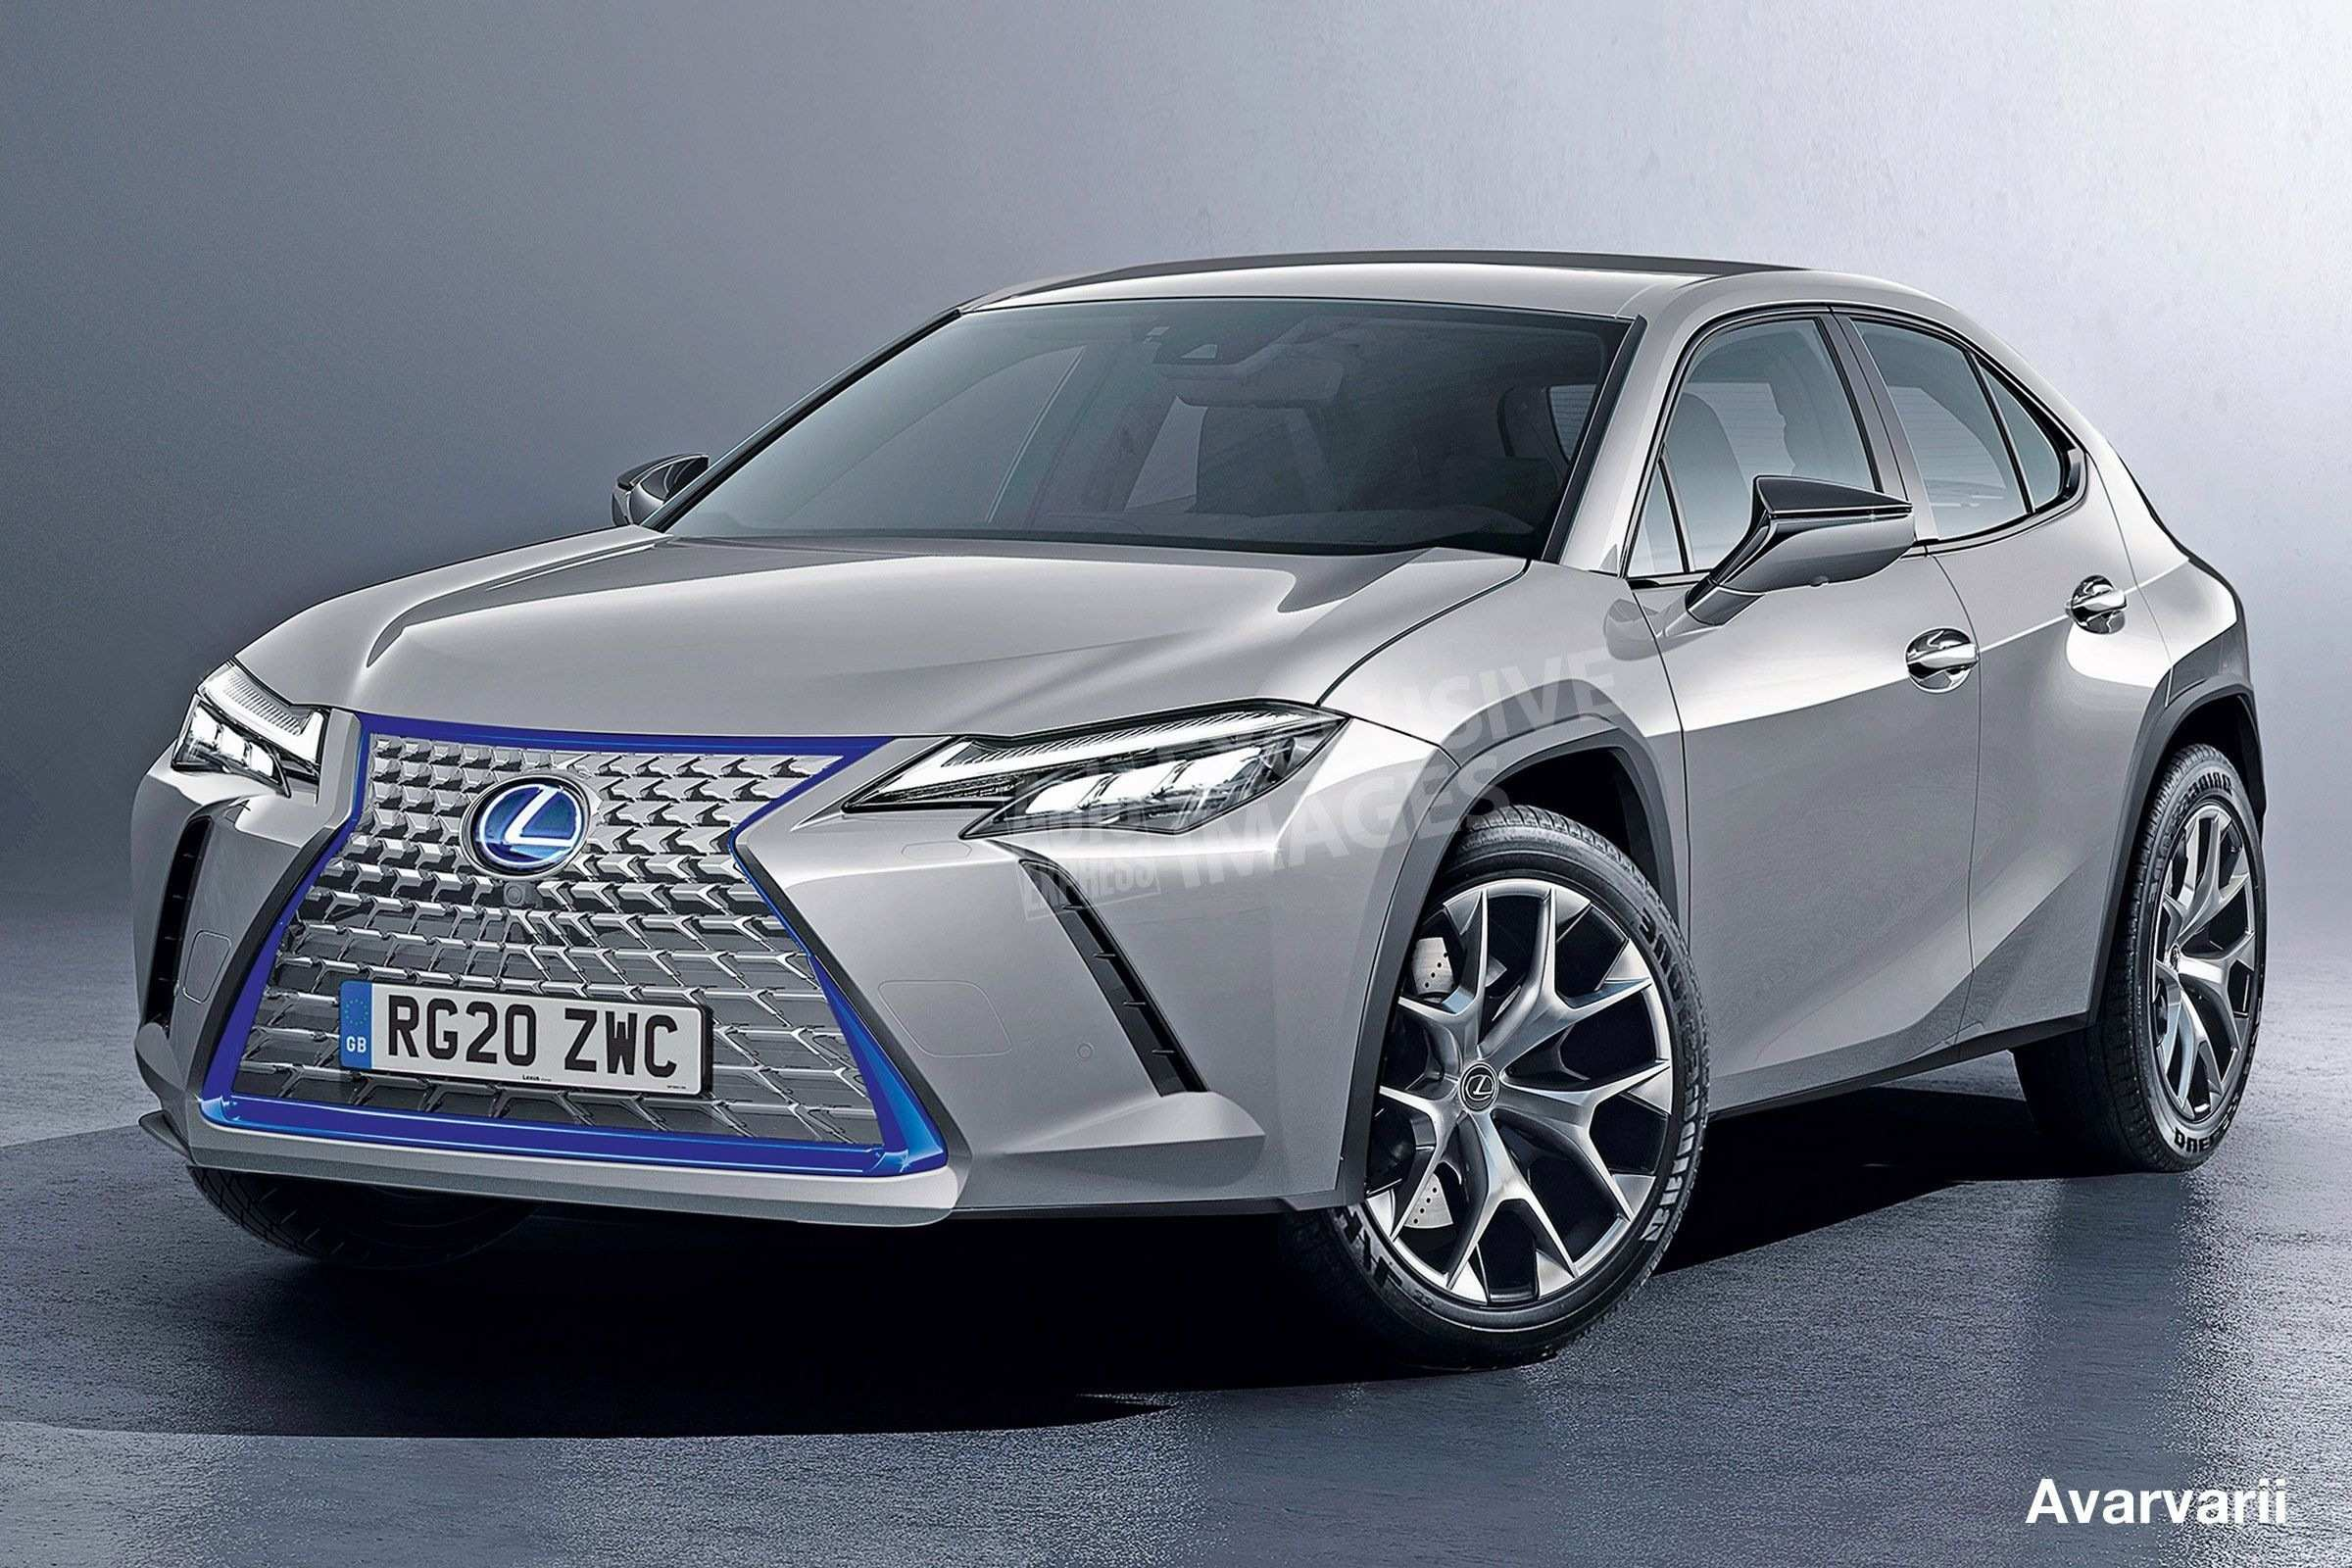 58 Great When Do The 2020 Lexus Cars Come Out New Concept for When Do The 2020 Lexus Cars Come Out